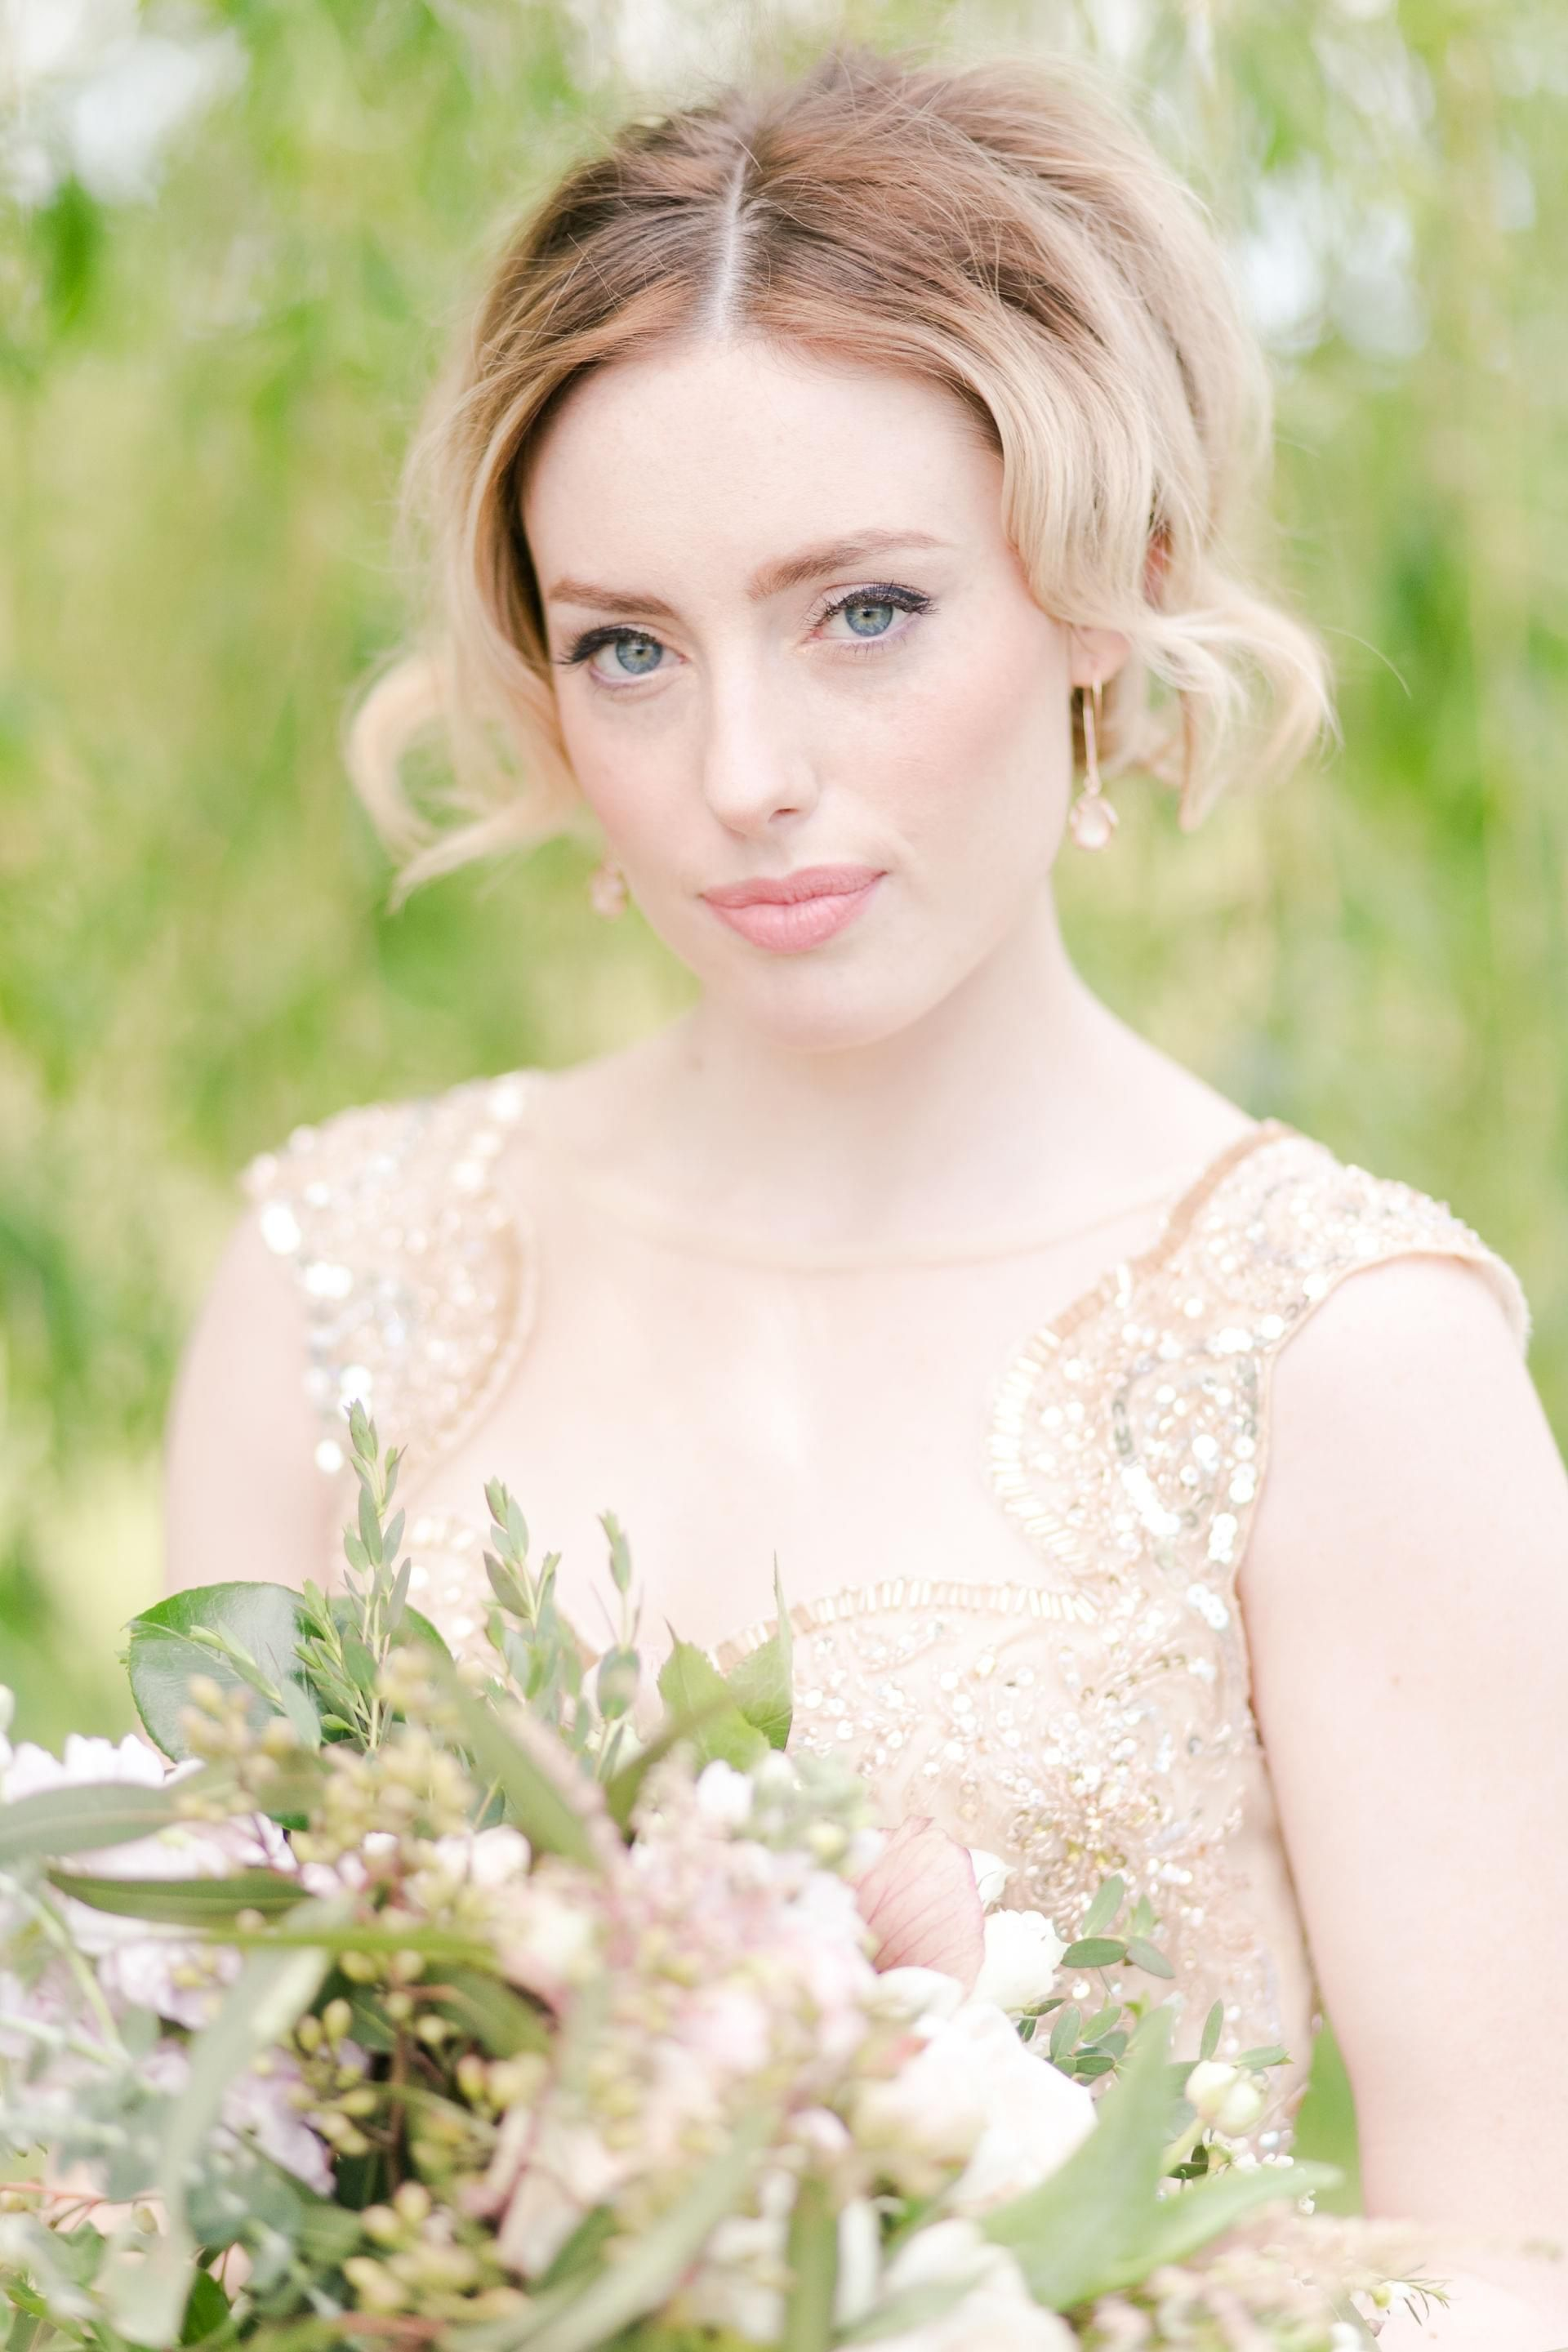 Bridal beauty ideas, ombré updo, face-framing curls, peach lipstick // M. Cave Photography